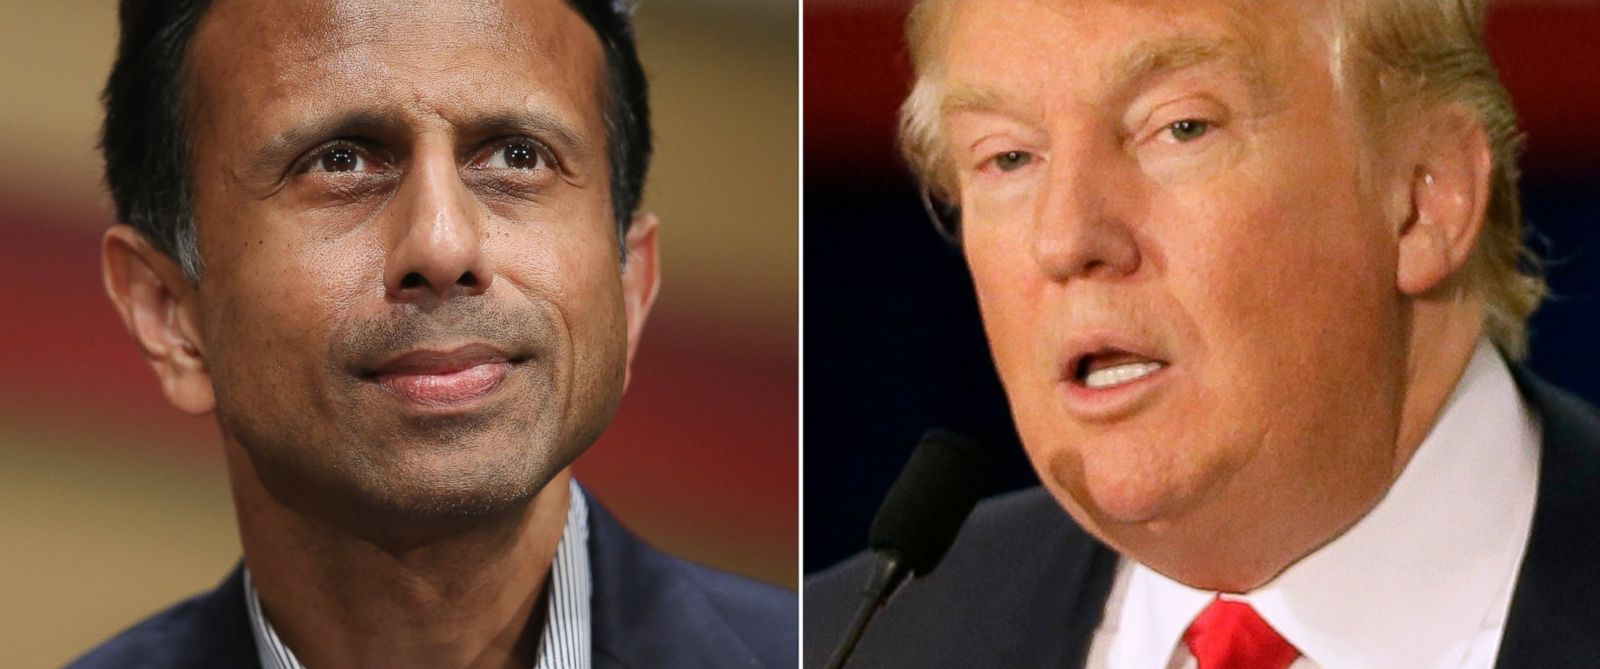 PHOTO: Bobby Jindal speaks in Ames, Iowa on July 18, 2015 and Donald Trump speaks in Dubuque, Iowa on Aug. 25, 2015.